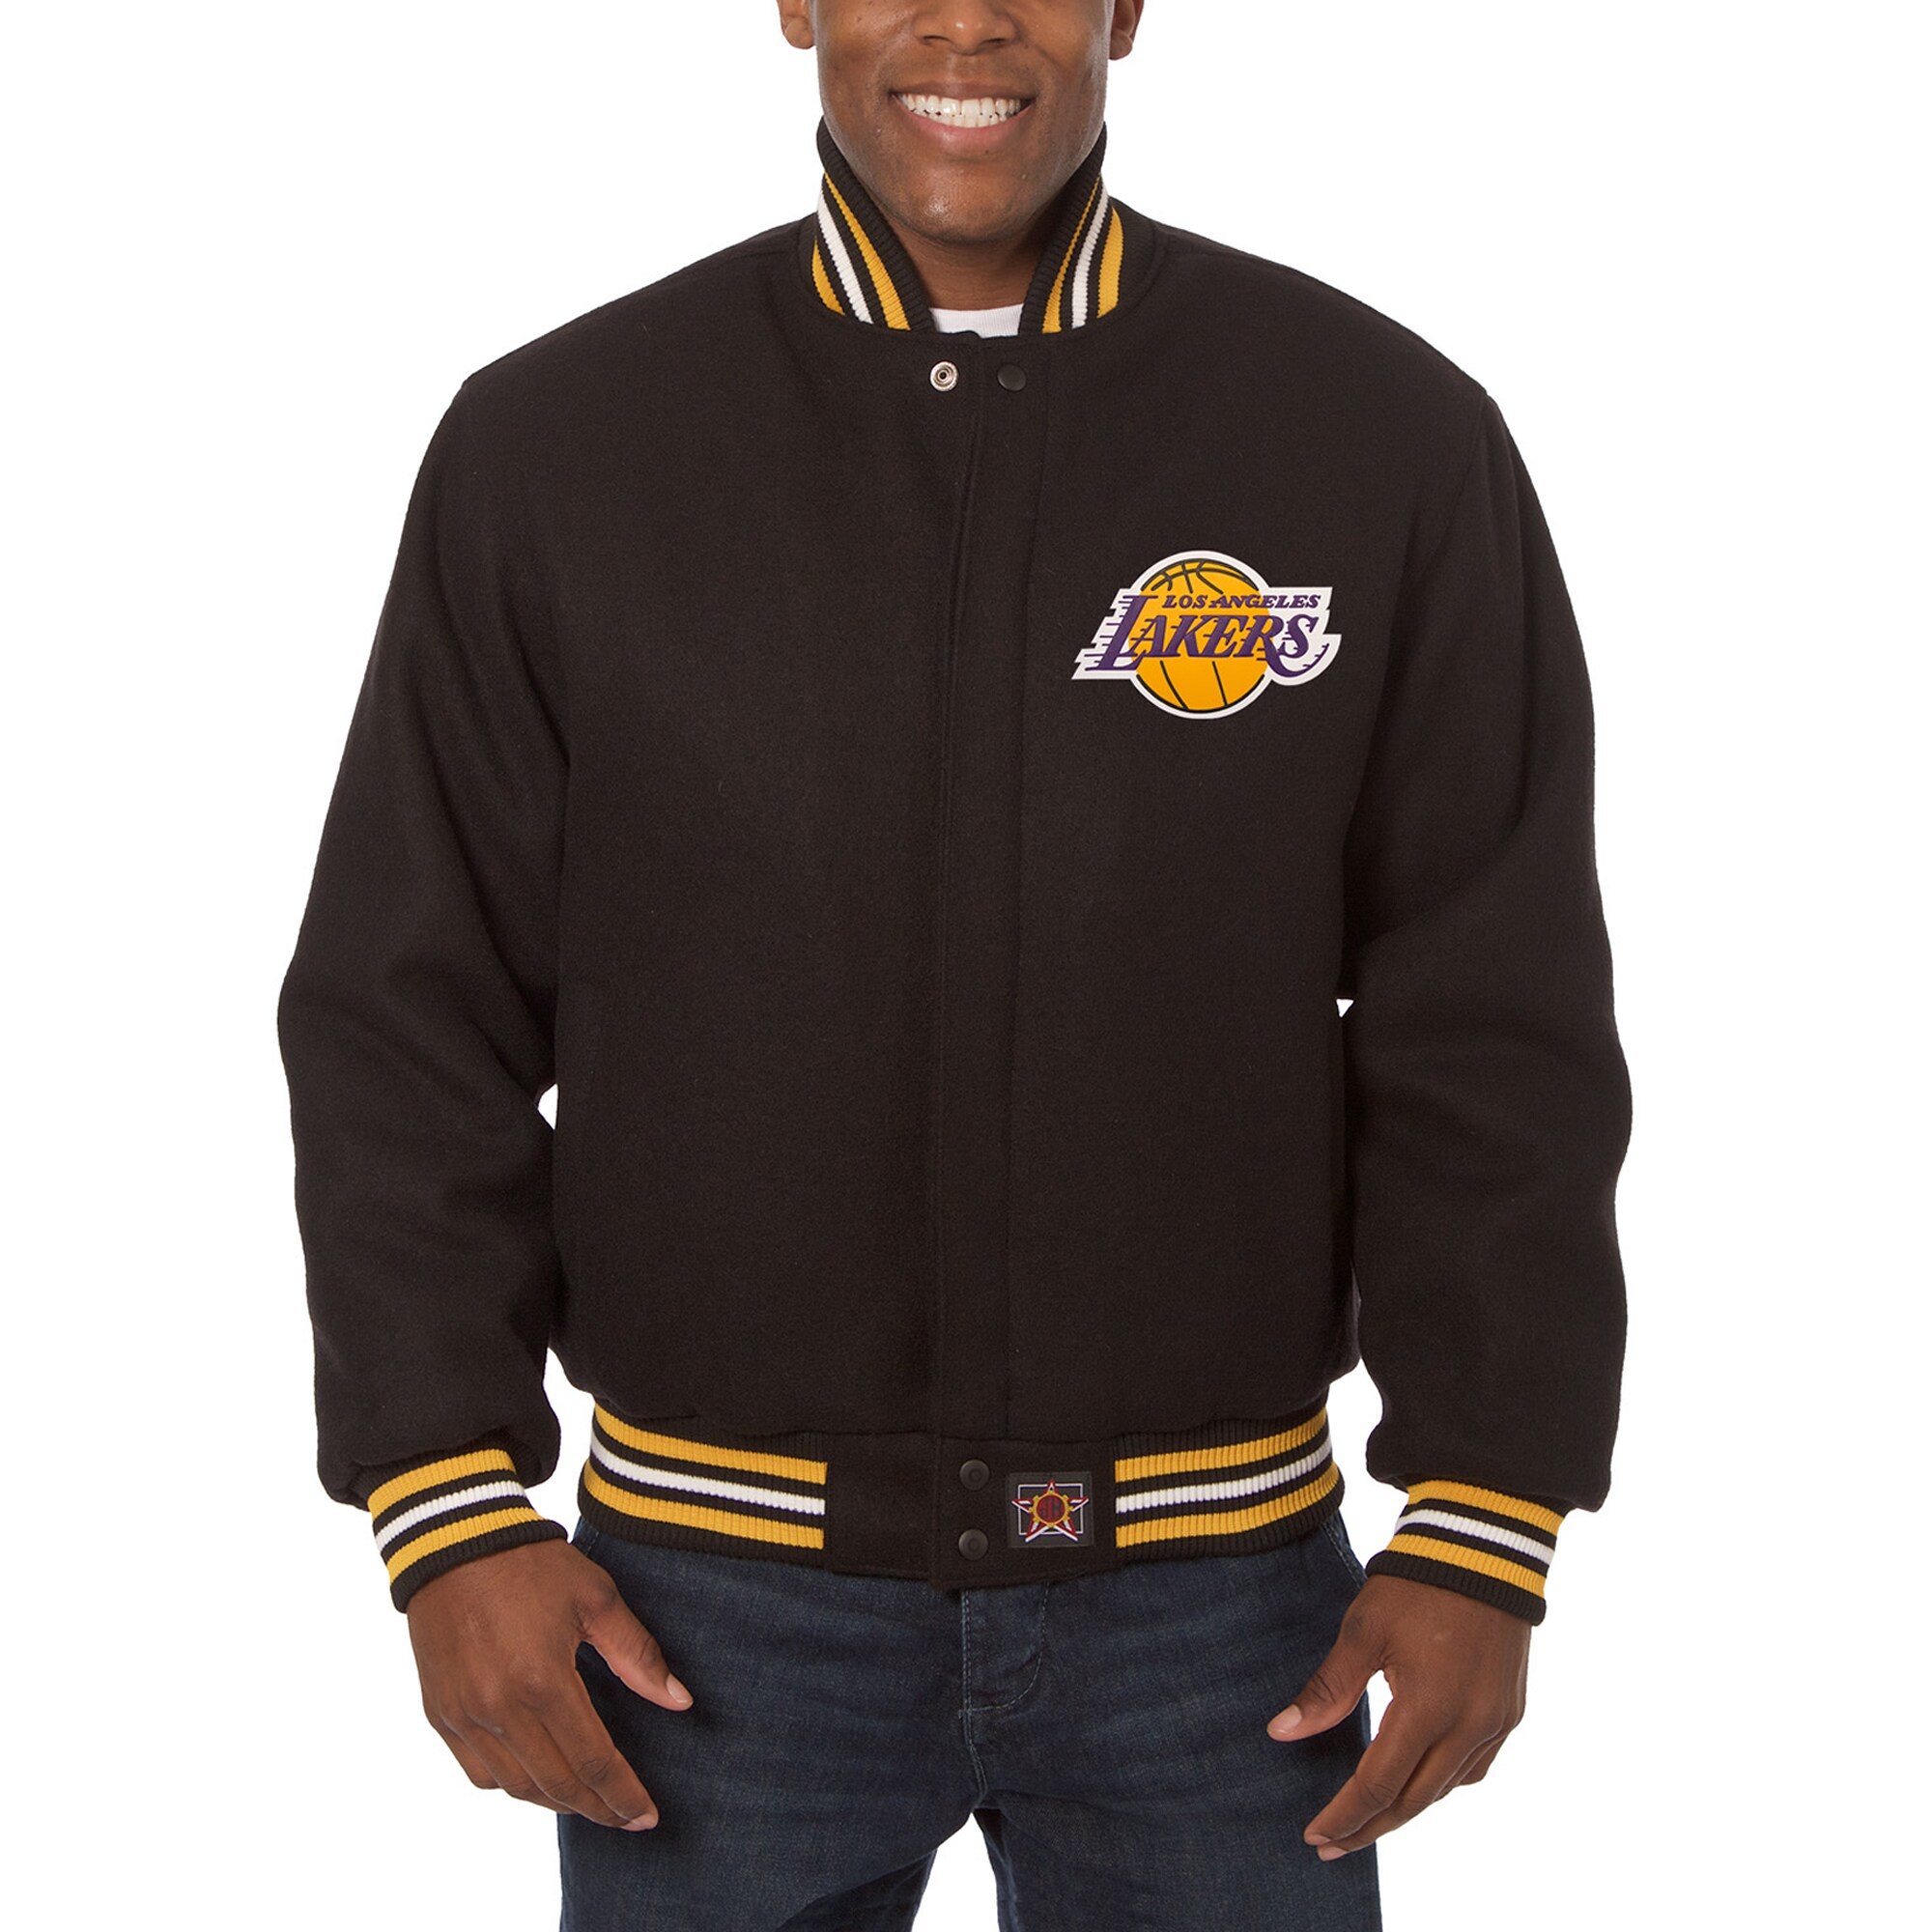 Los Angeles Lakers JH Design Big & Tall All Wool Jacket with Leather Logo - Black